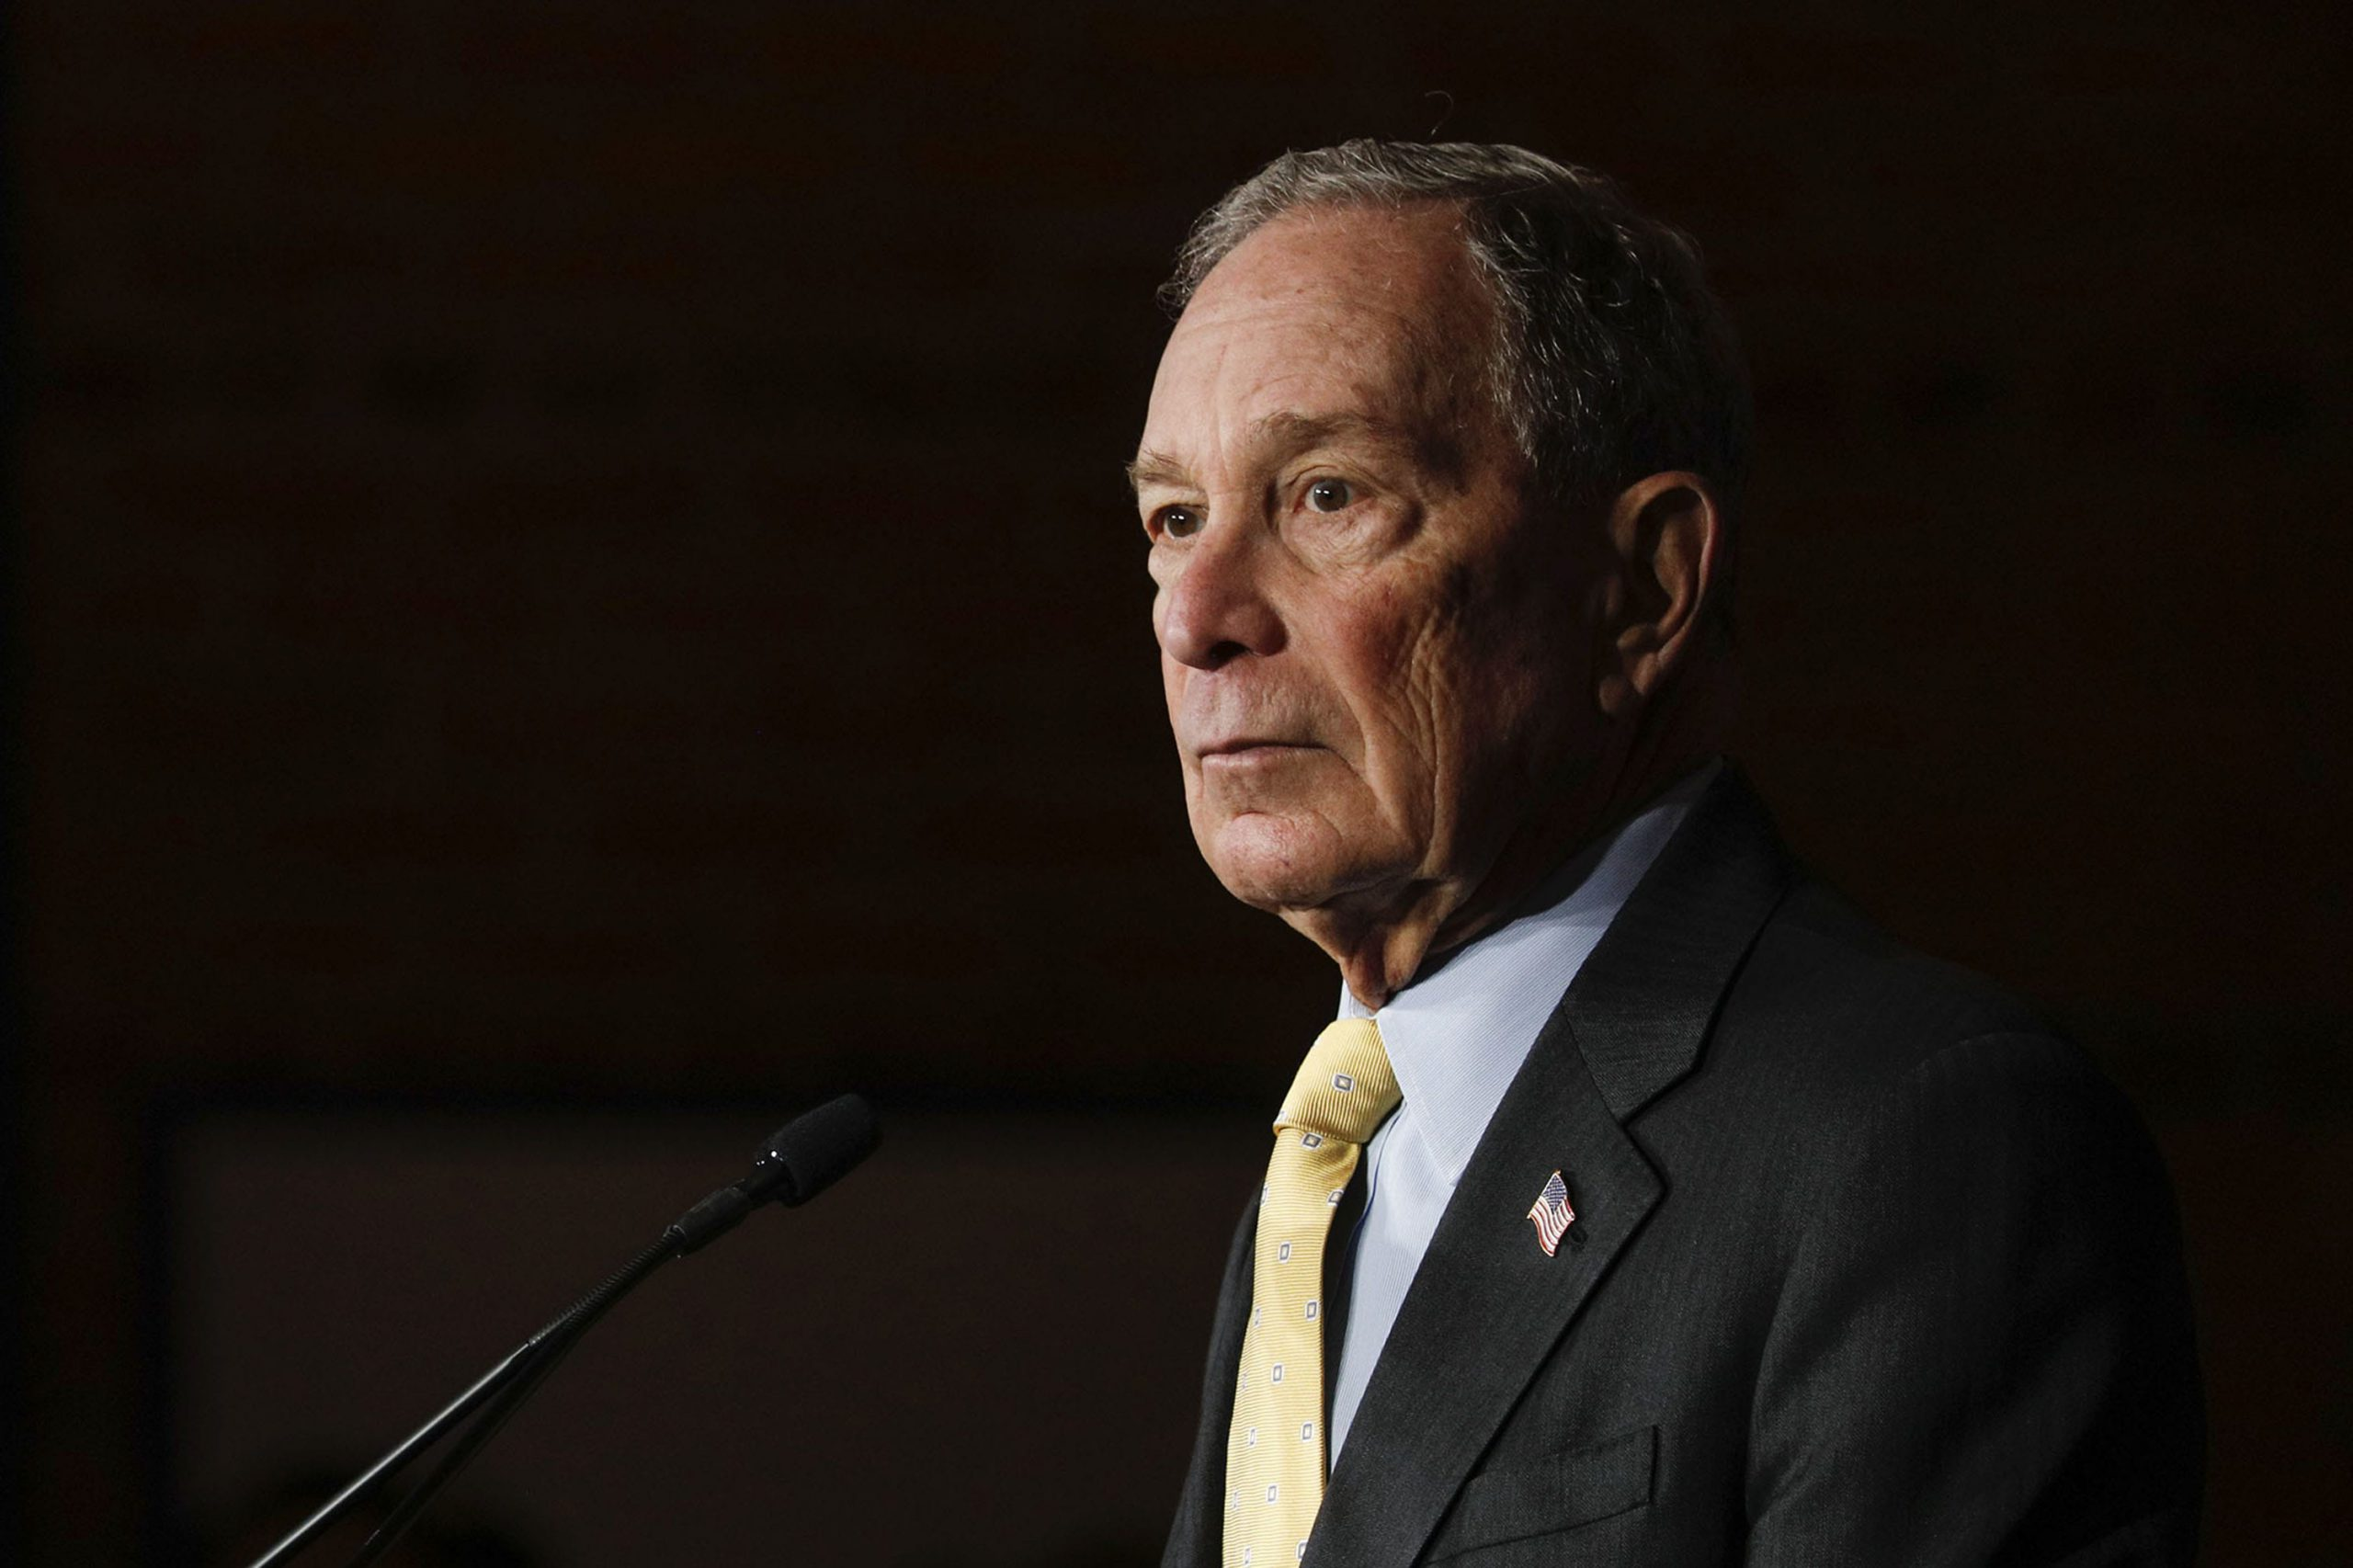 Bloomberg botches tax return question in Democratic debate: 'I can't go to TurboTax'